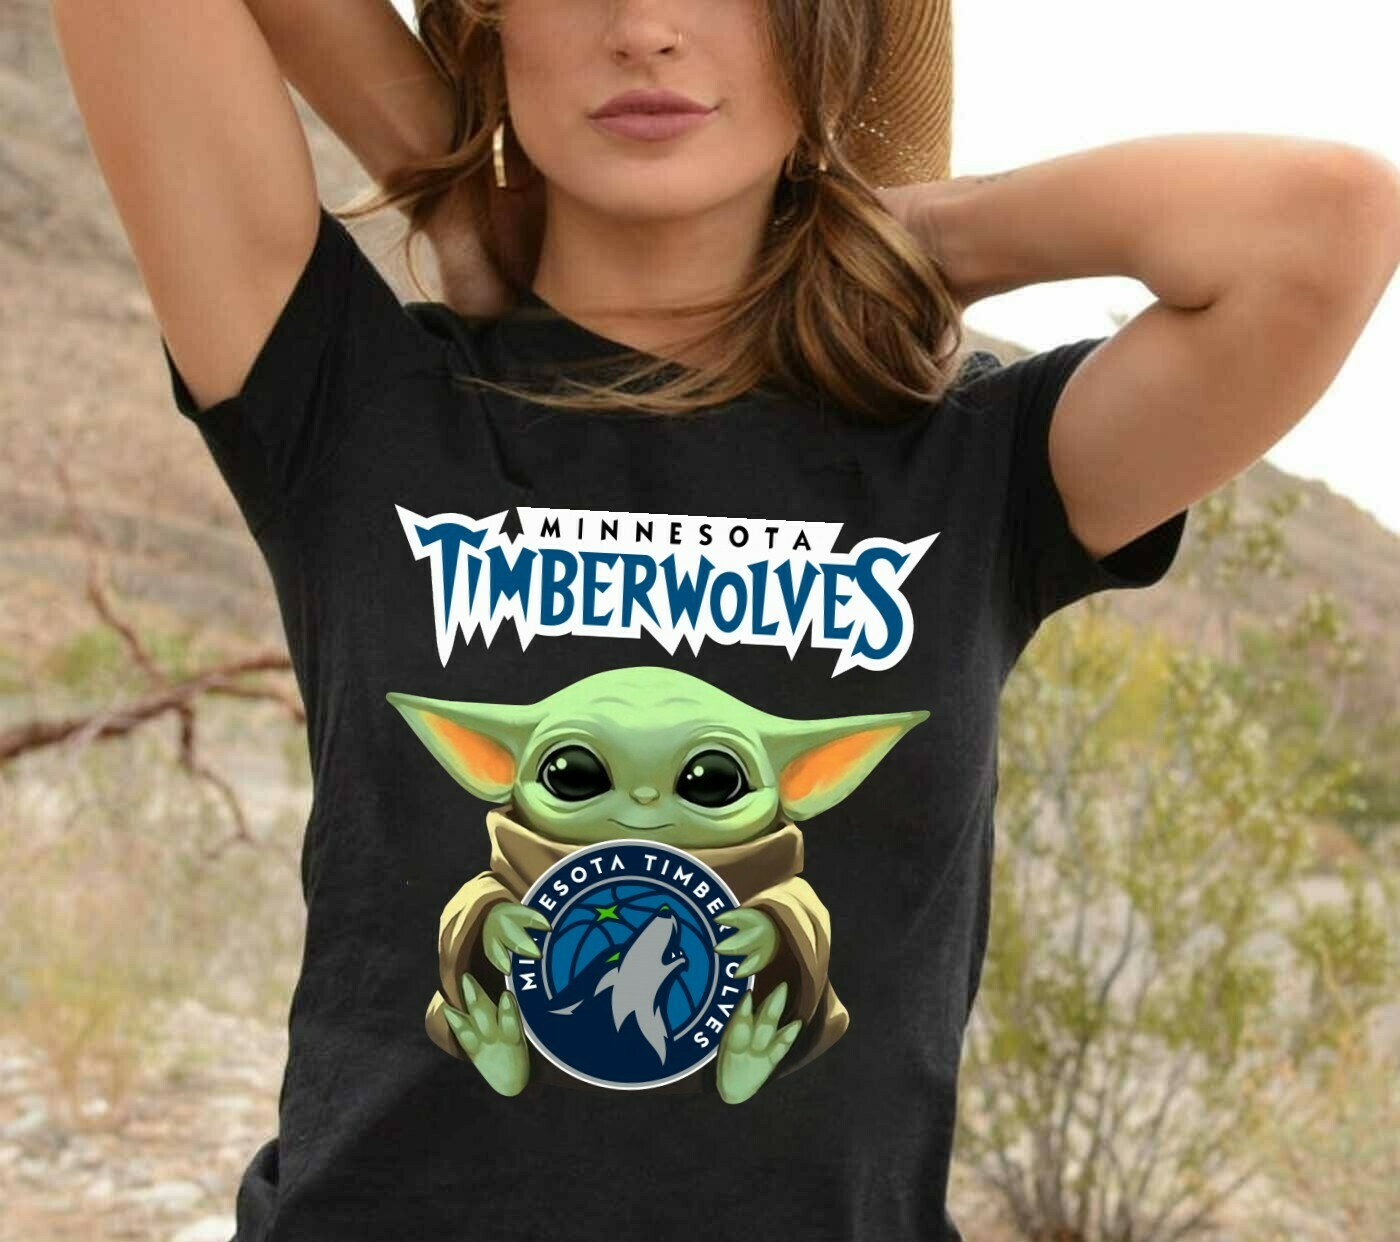 Minnesota Timberwolves Baby Yoda Star Wars The Mandalorian The Child First Memories Floating NBA Basketball Dad Mon Kid Fan Gift T-Shirt Long Sleeve Sweatshirt Hoodie Jolly Family Gifts